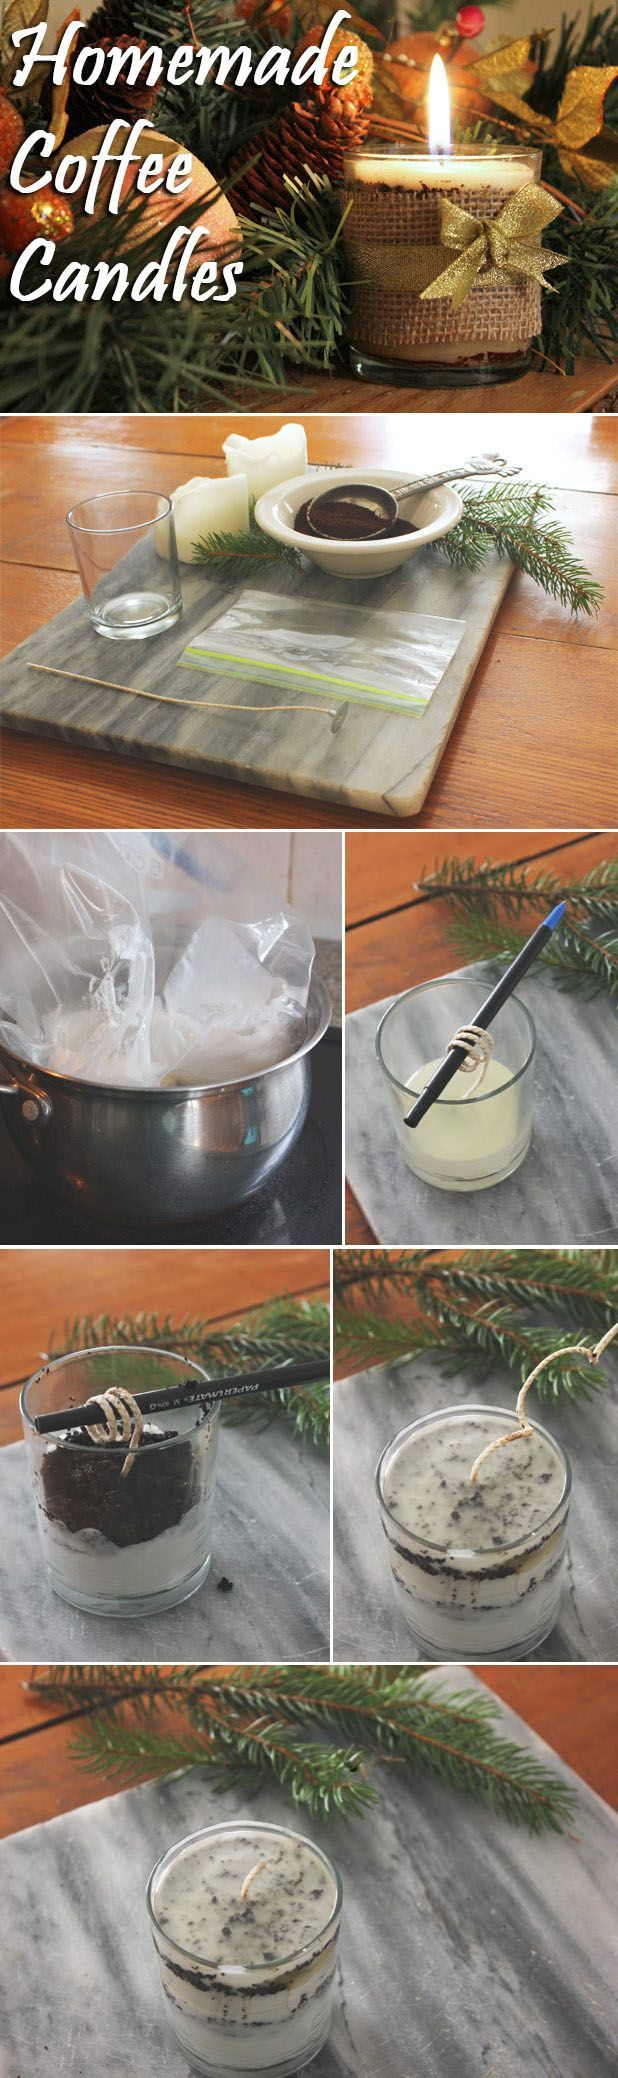 Make your own coffee scented candles from old candles and coffee grounds! You can save so much money making this rather than spending a lot at the mall. A great upcycling trick and amazing hostess gift for the holidays! www.ehow.com/...